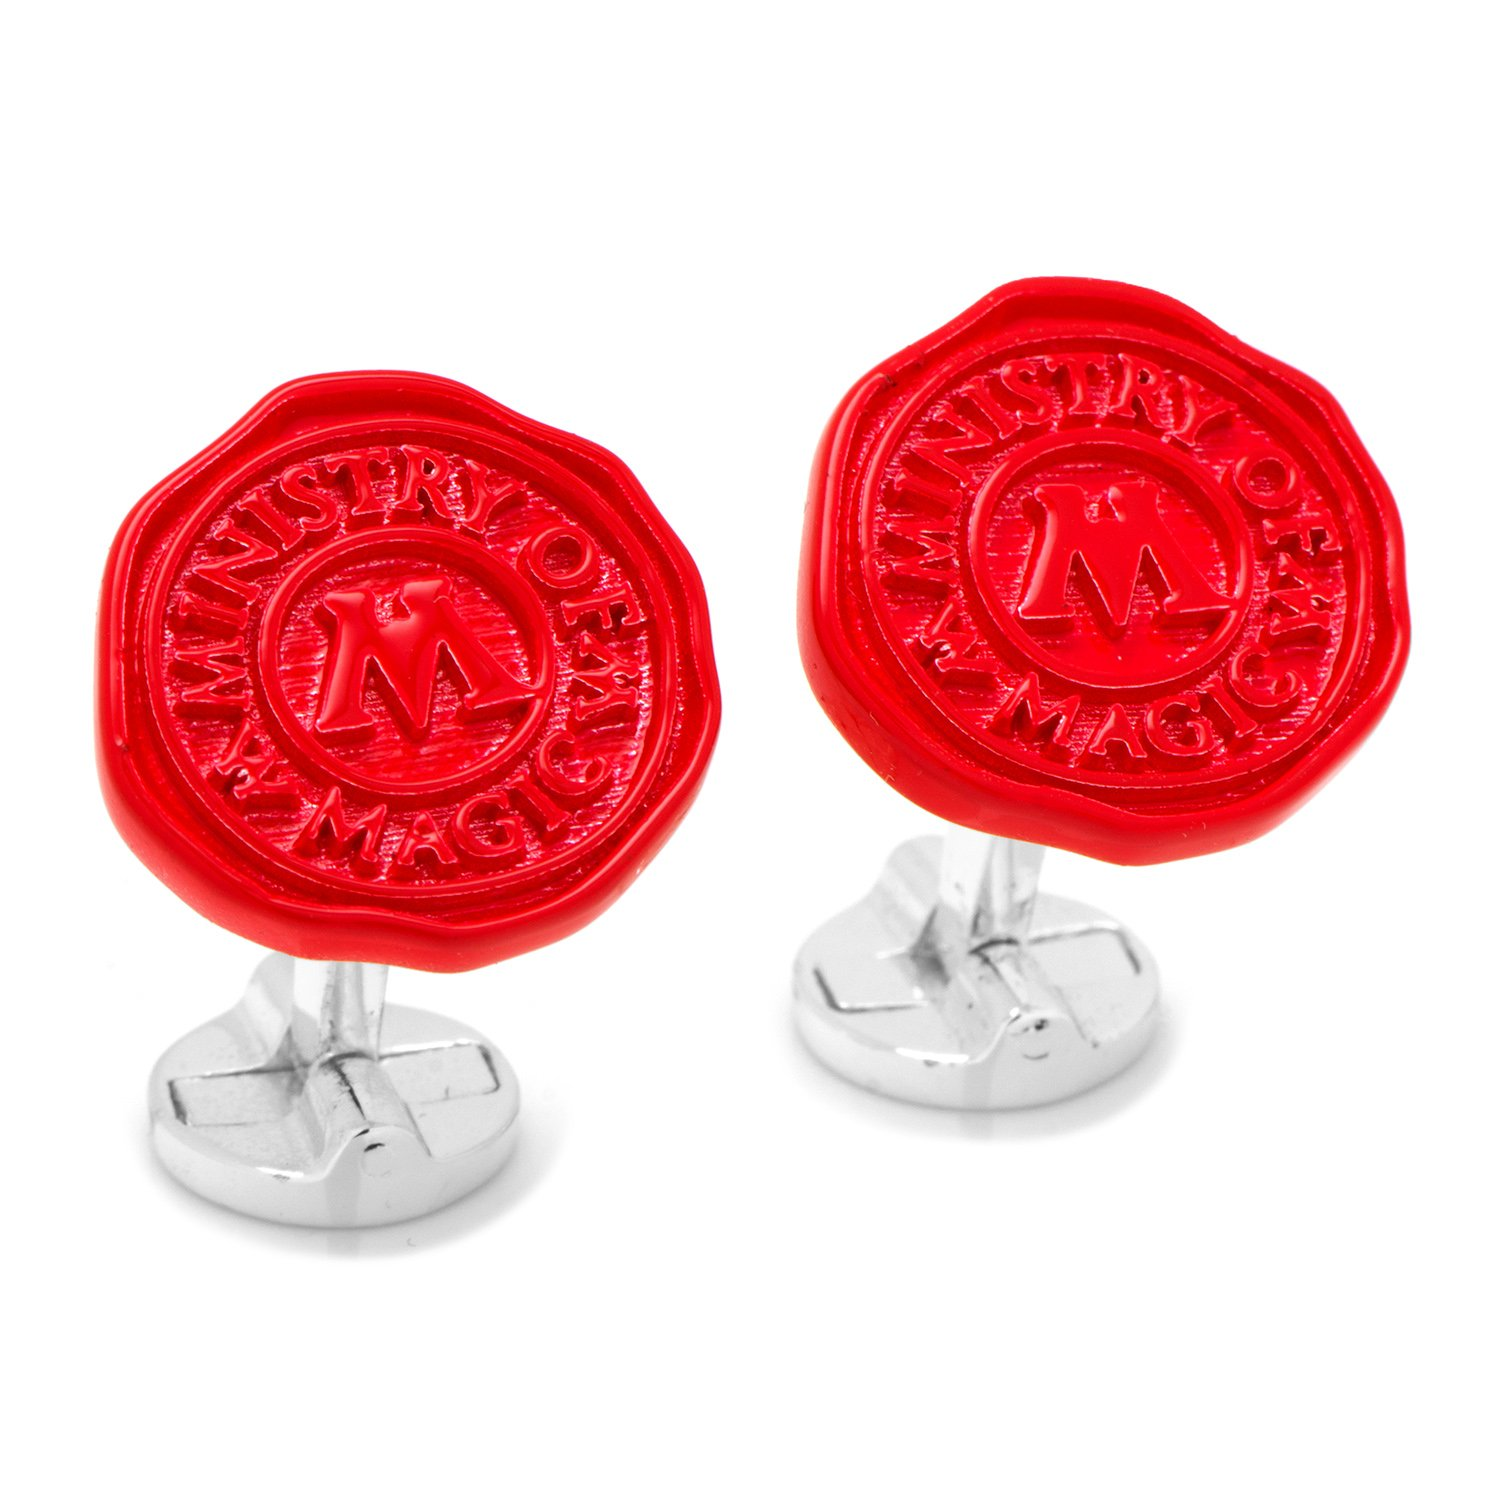 Harry Potter Ministry of Magic Wax Stamp Cufflinks, Officially Licensed by Cufflinks (Image #2)